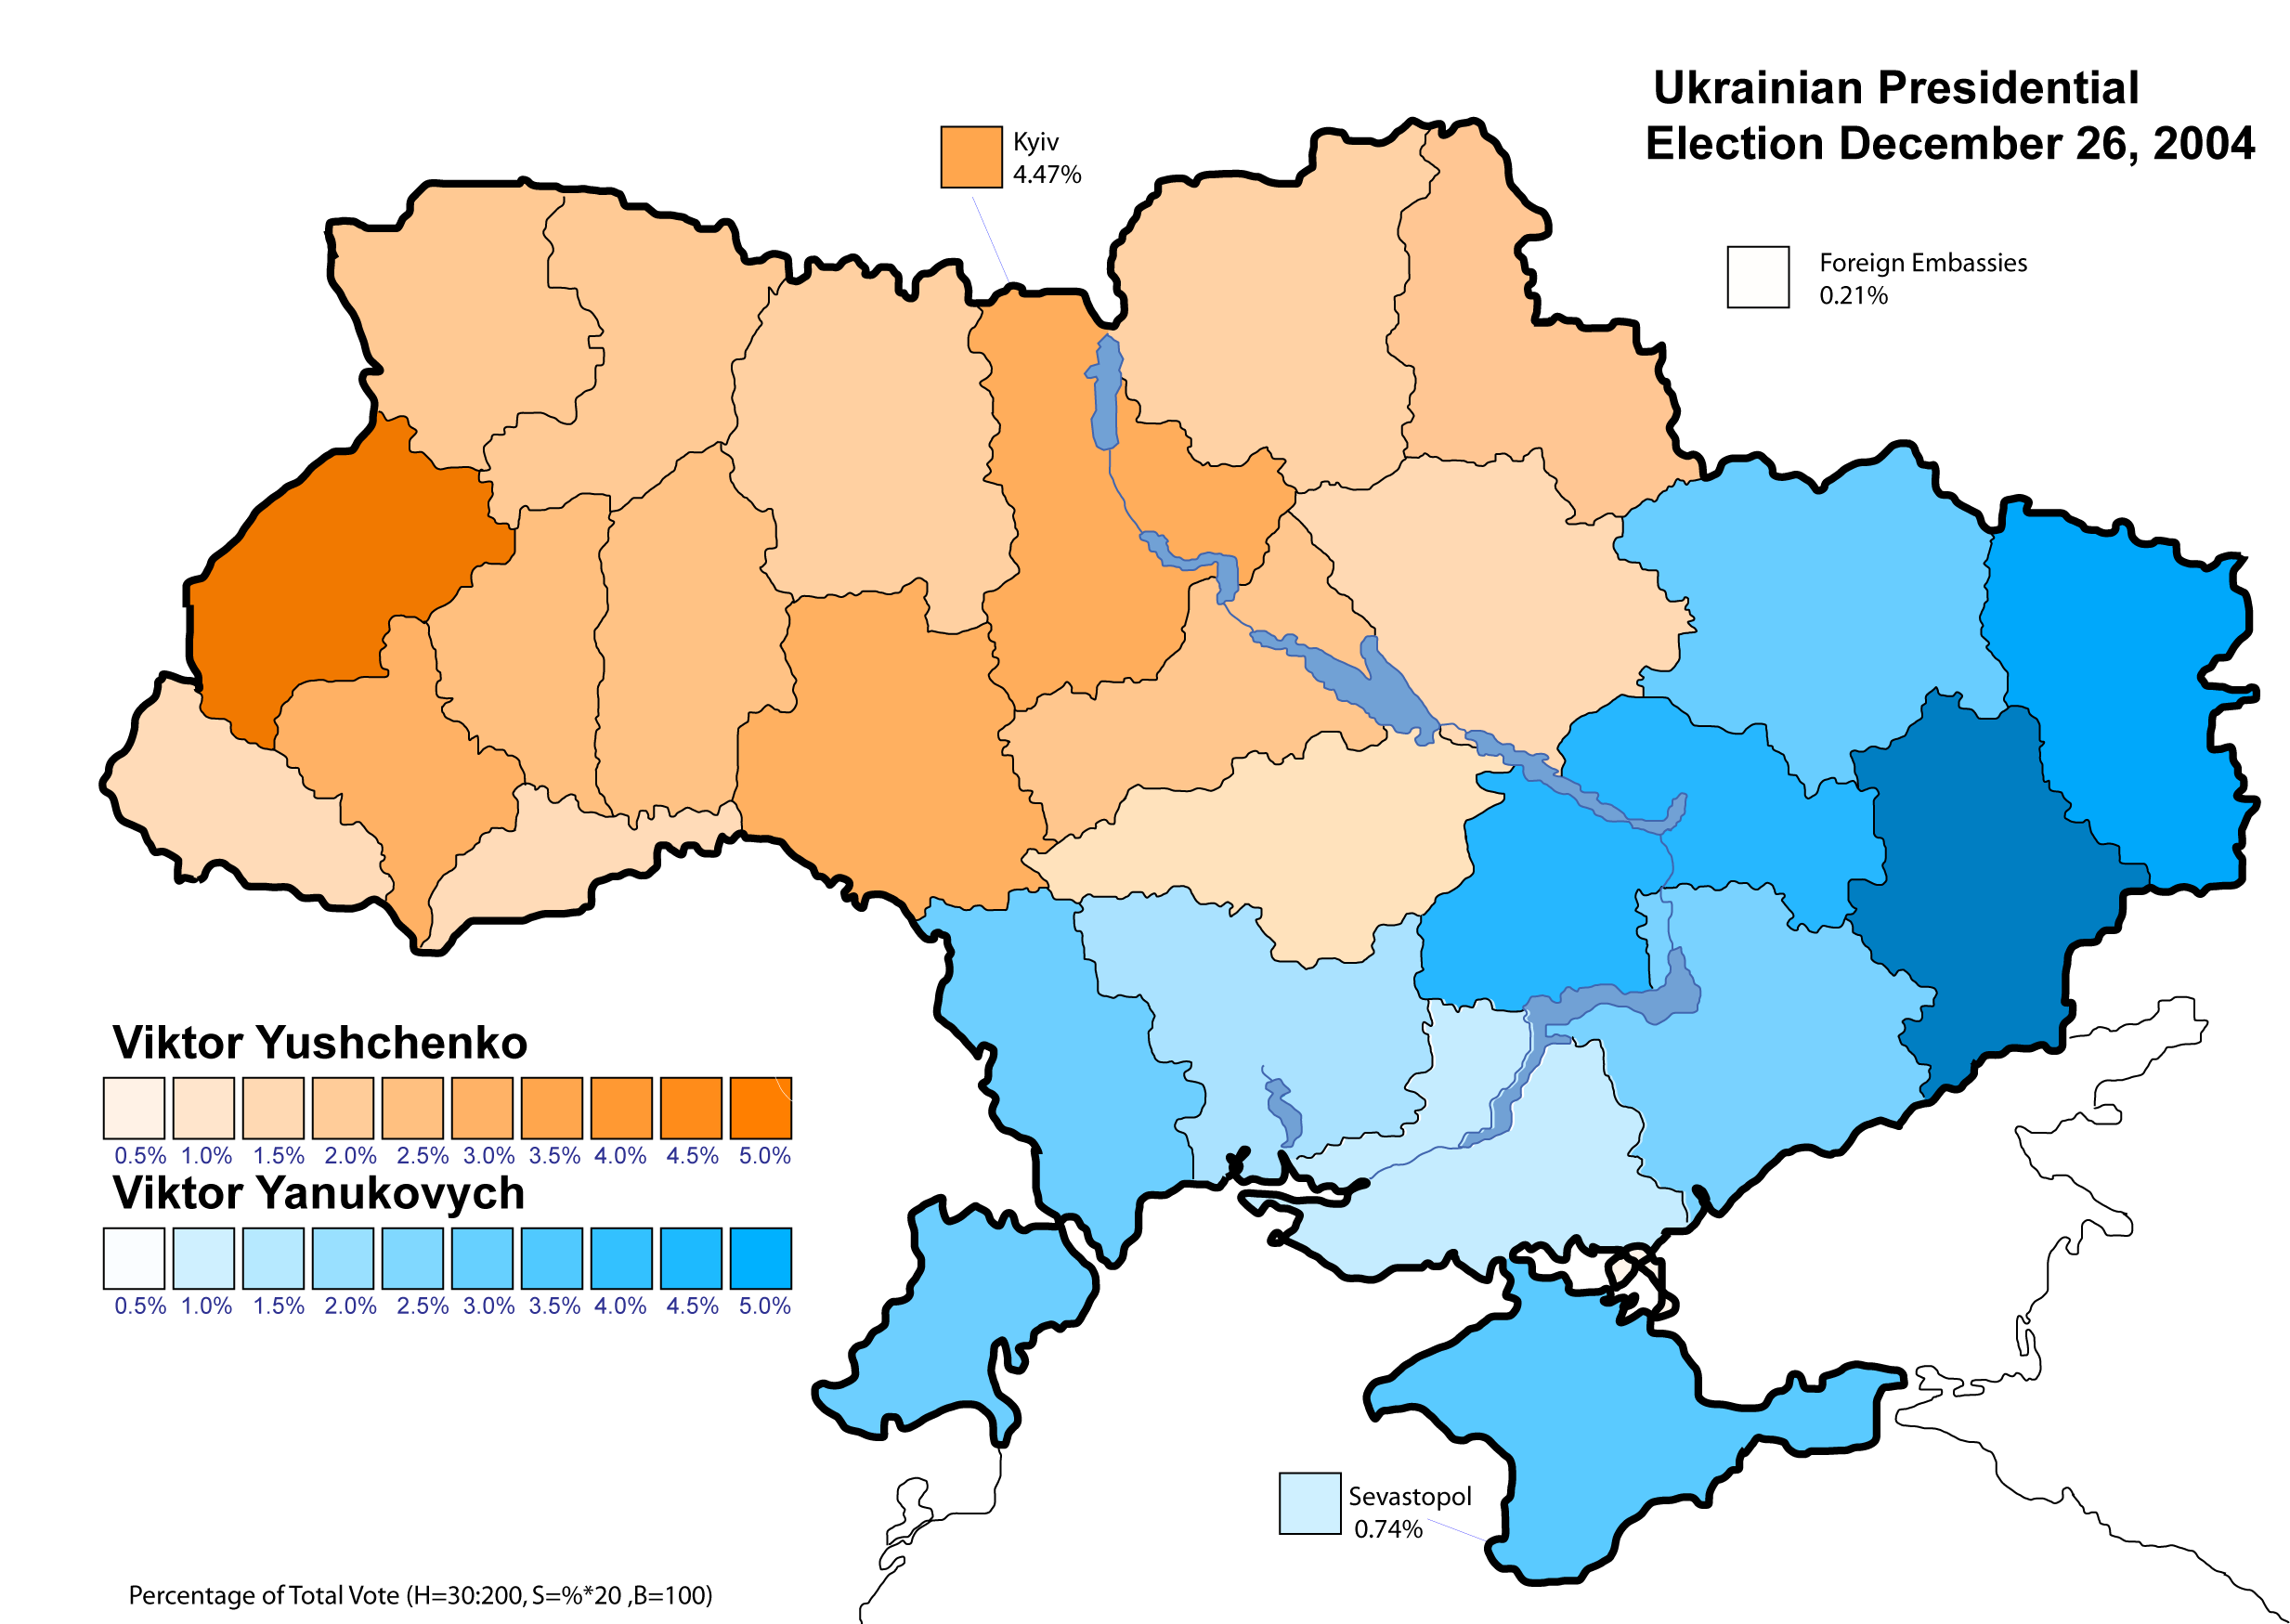 http://upload.wikimedia.org/wikipedia/commons/b/b6/Ukraine_Presidential_Dec_2004_Vote_(Highest_vote)a.png